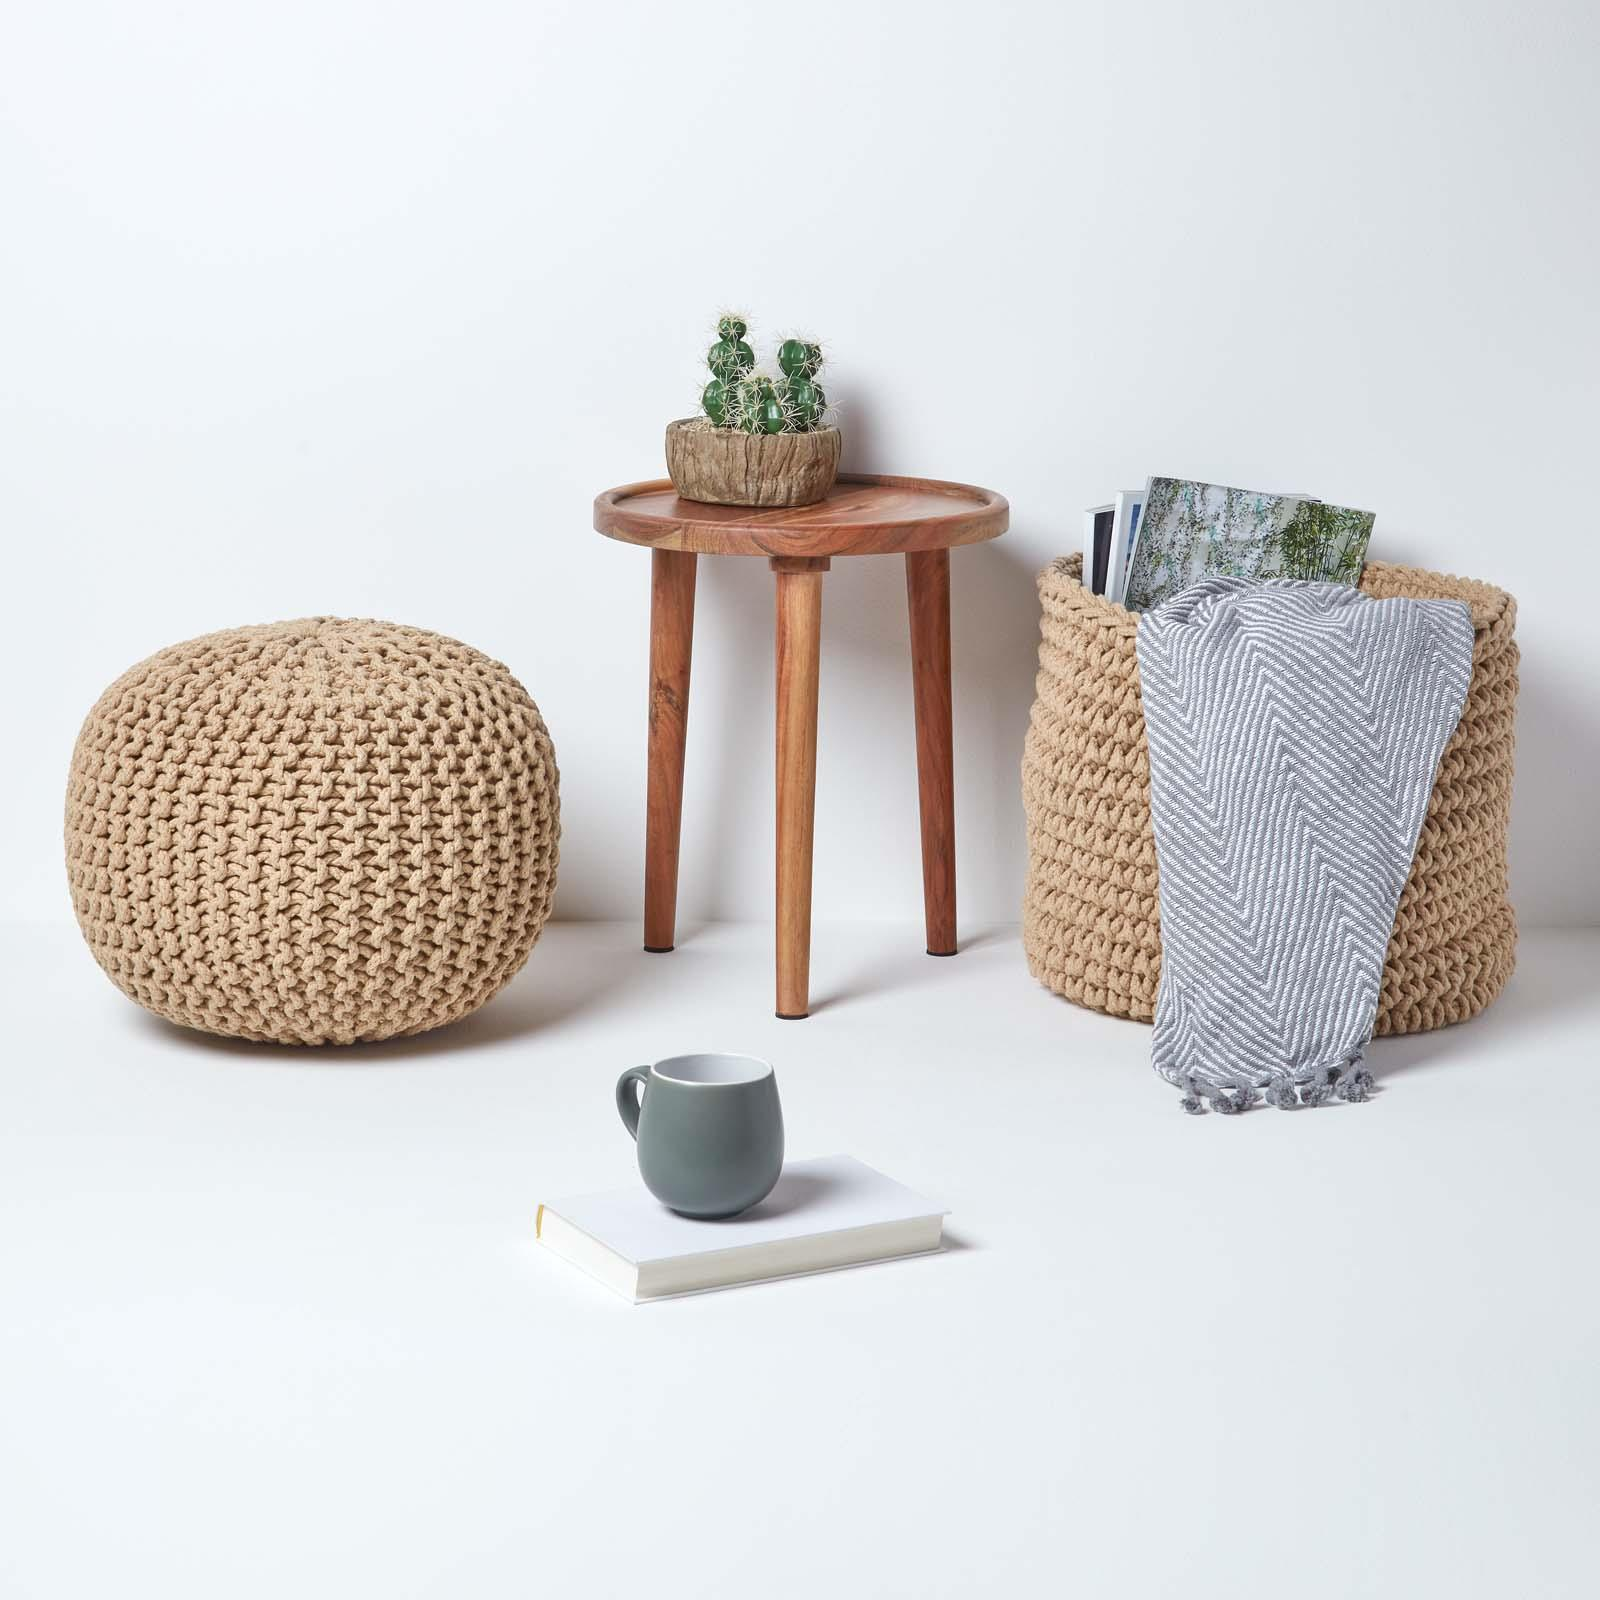 Hand-Knitted-100-Cotton-Pouffes-Round-Sphere-Or-Cube-Square-Chunky-Footstools thumbnail 84